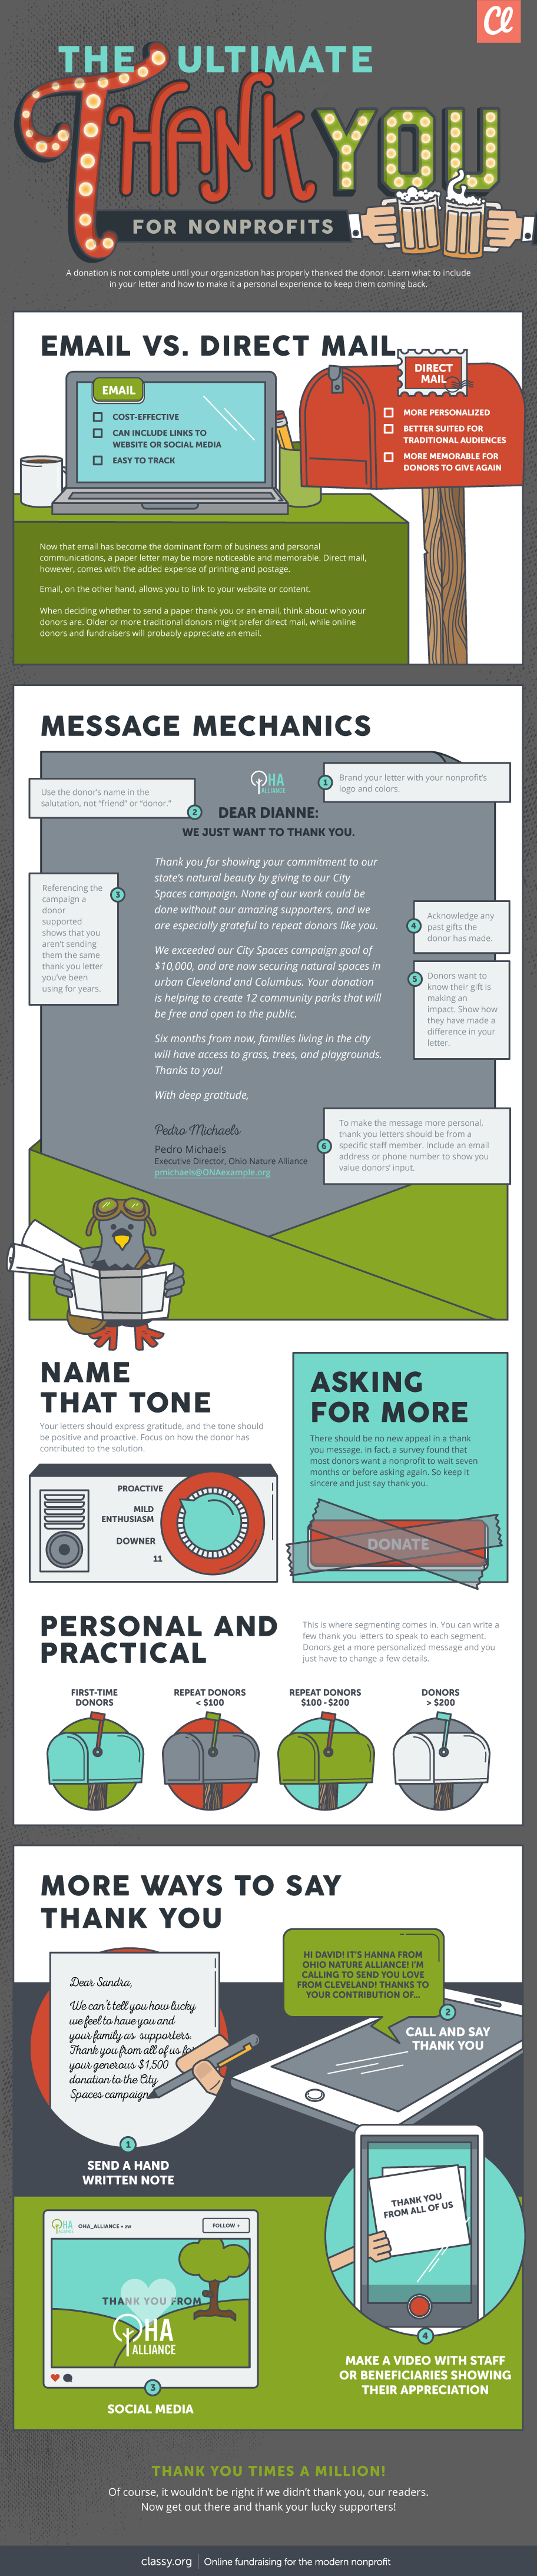 Infographic The Ultimate Thank You For Nonprofits Classy